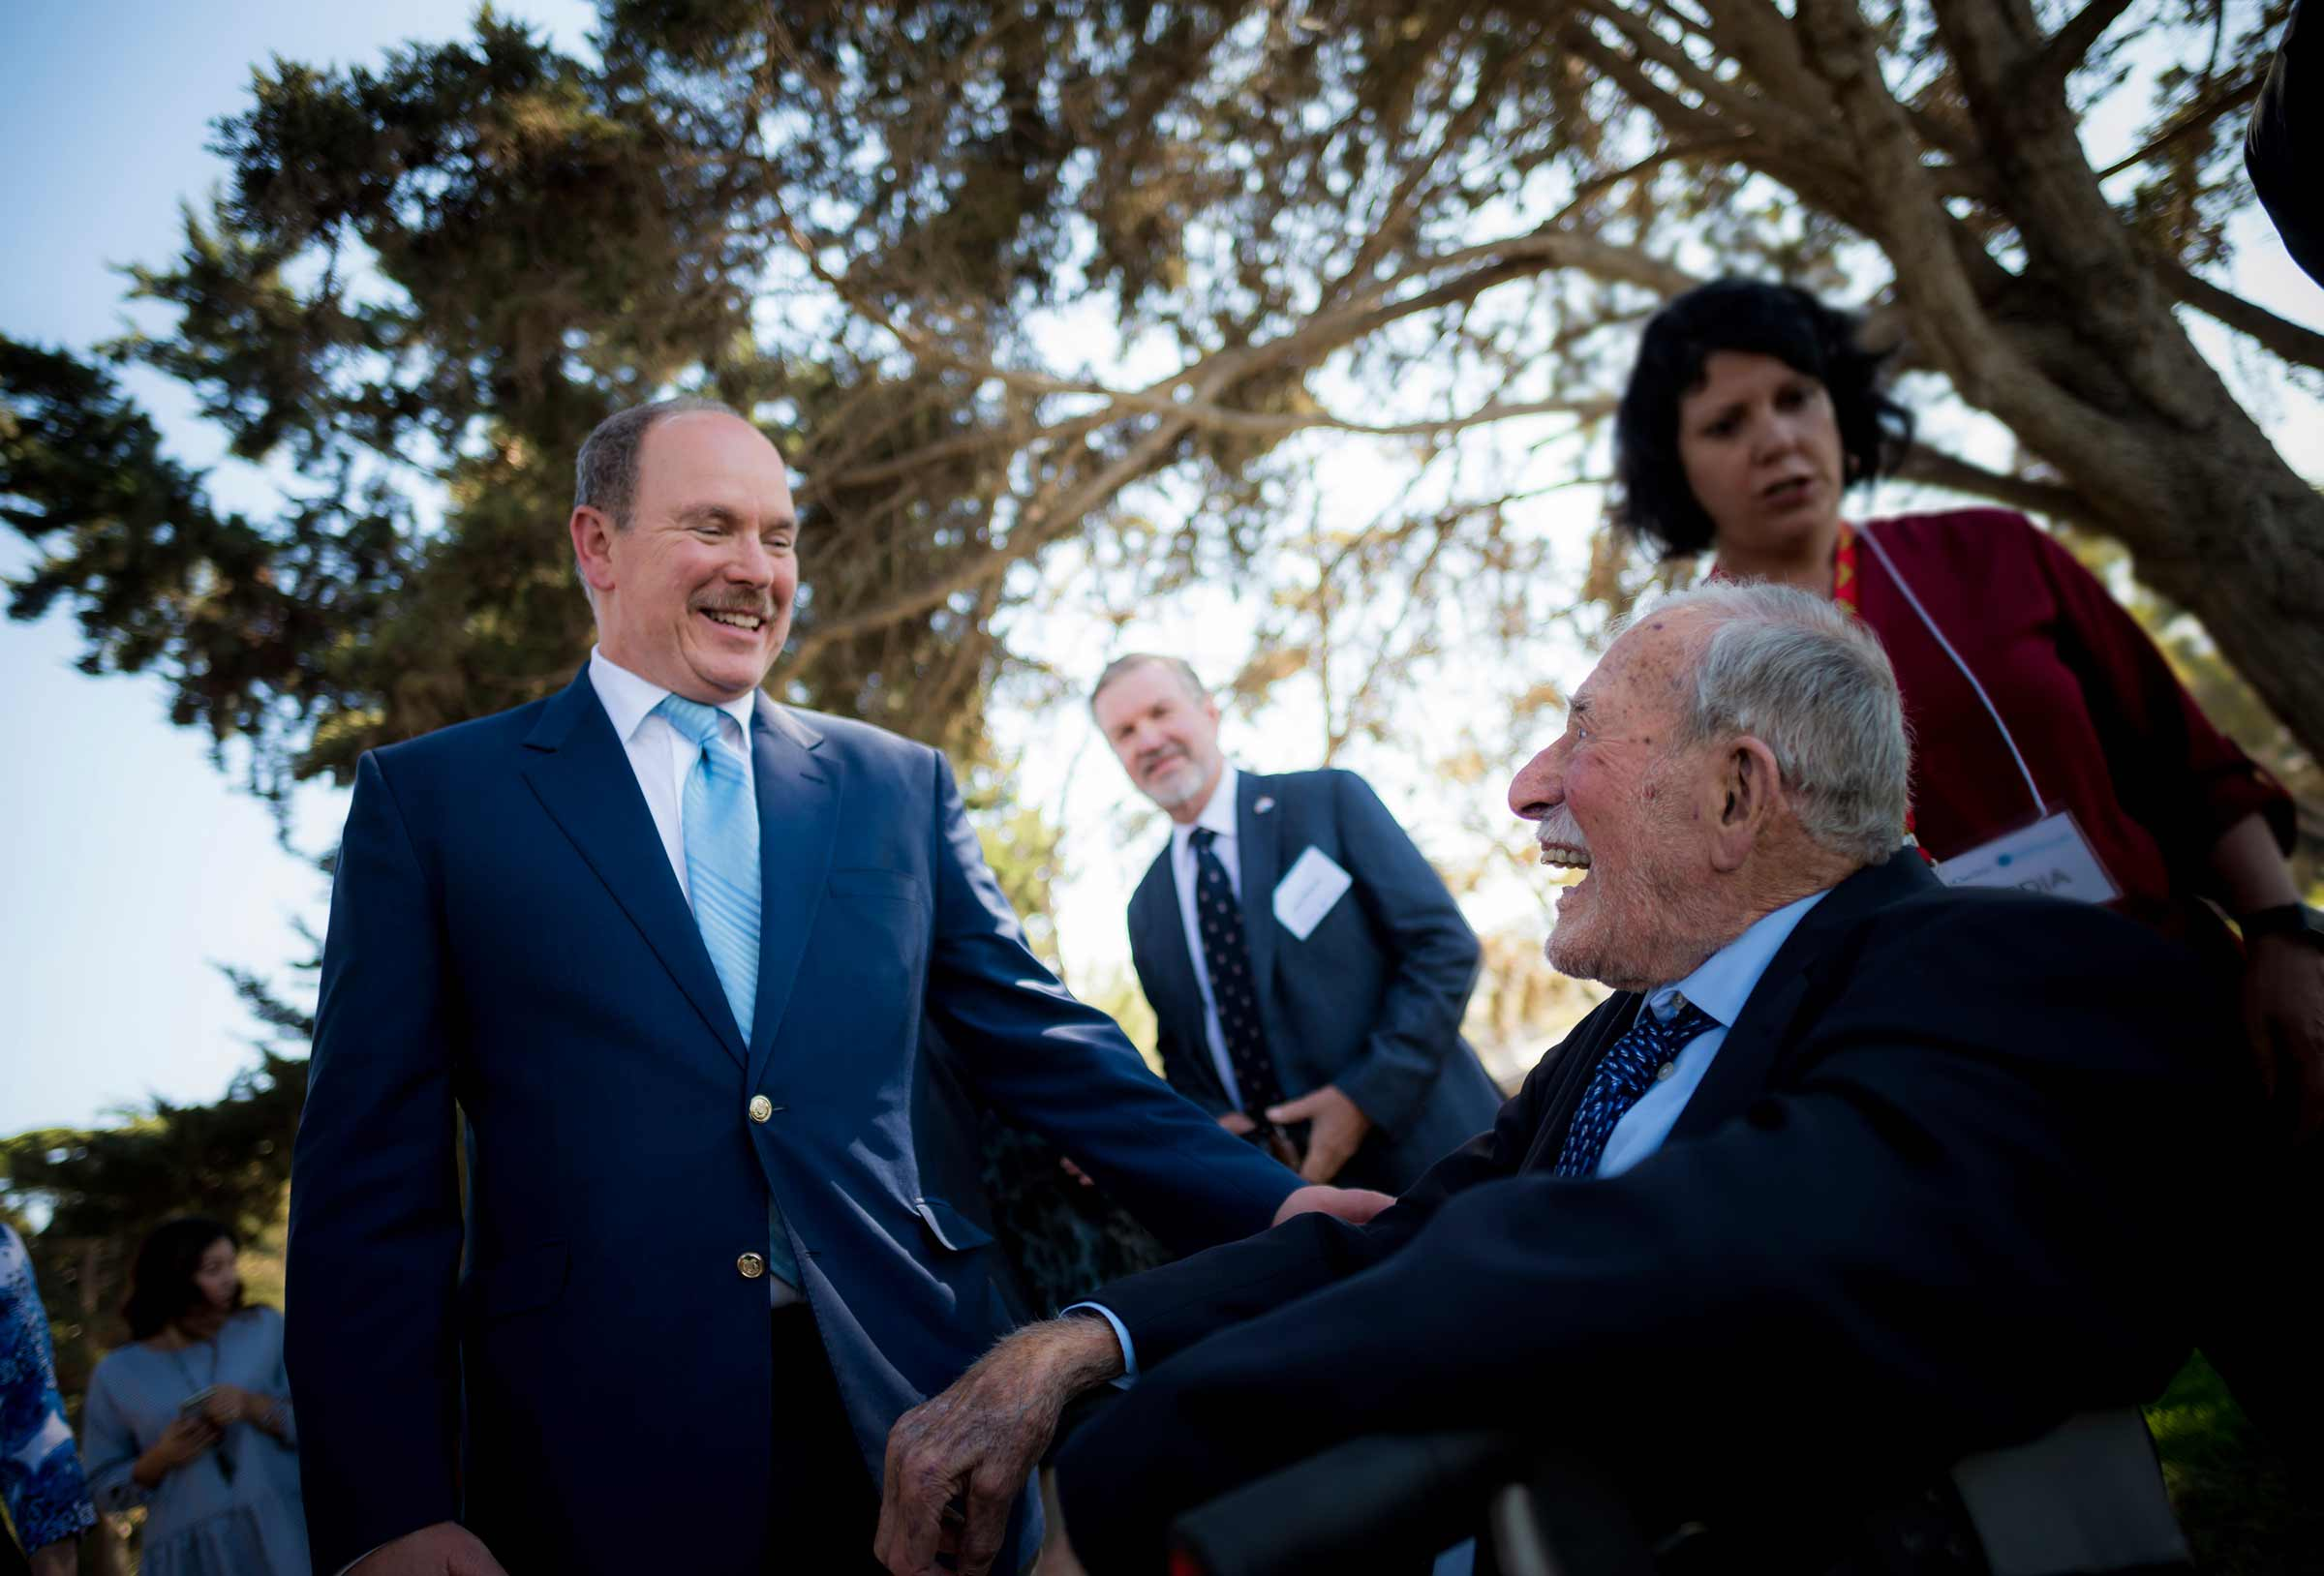 Walter Munk and His Serene Highness Prince Albert II at UC San Diego